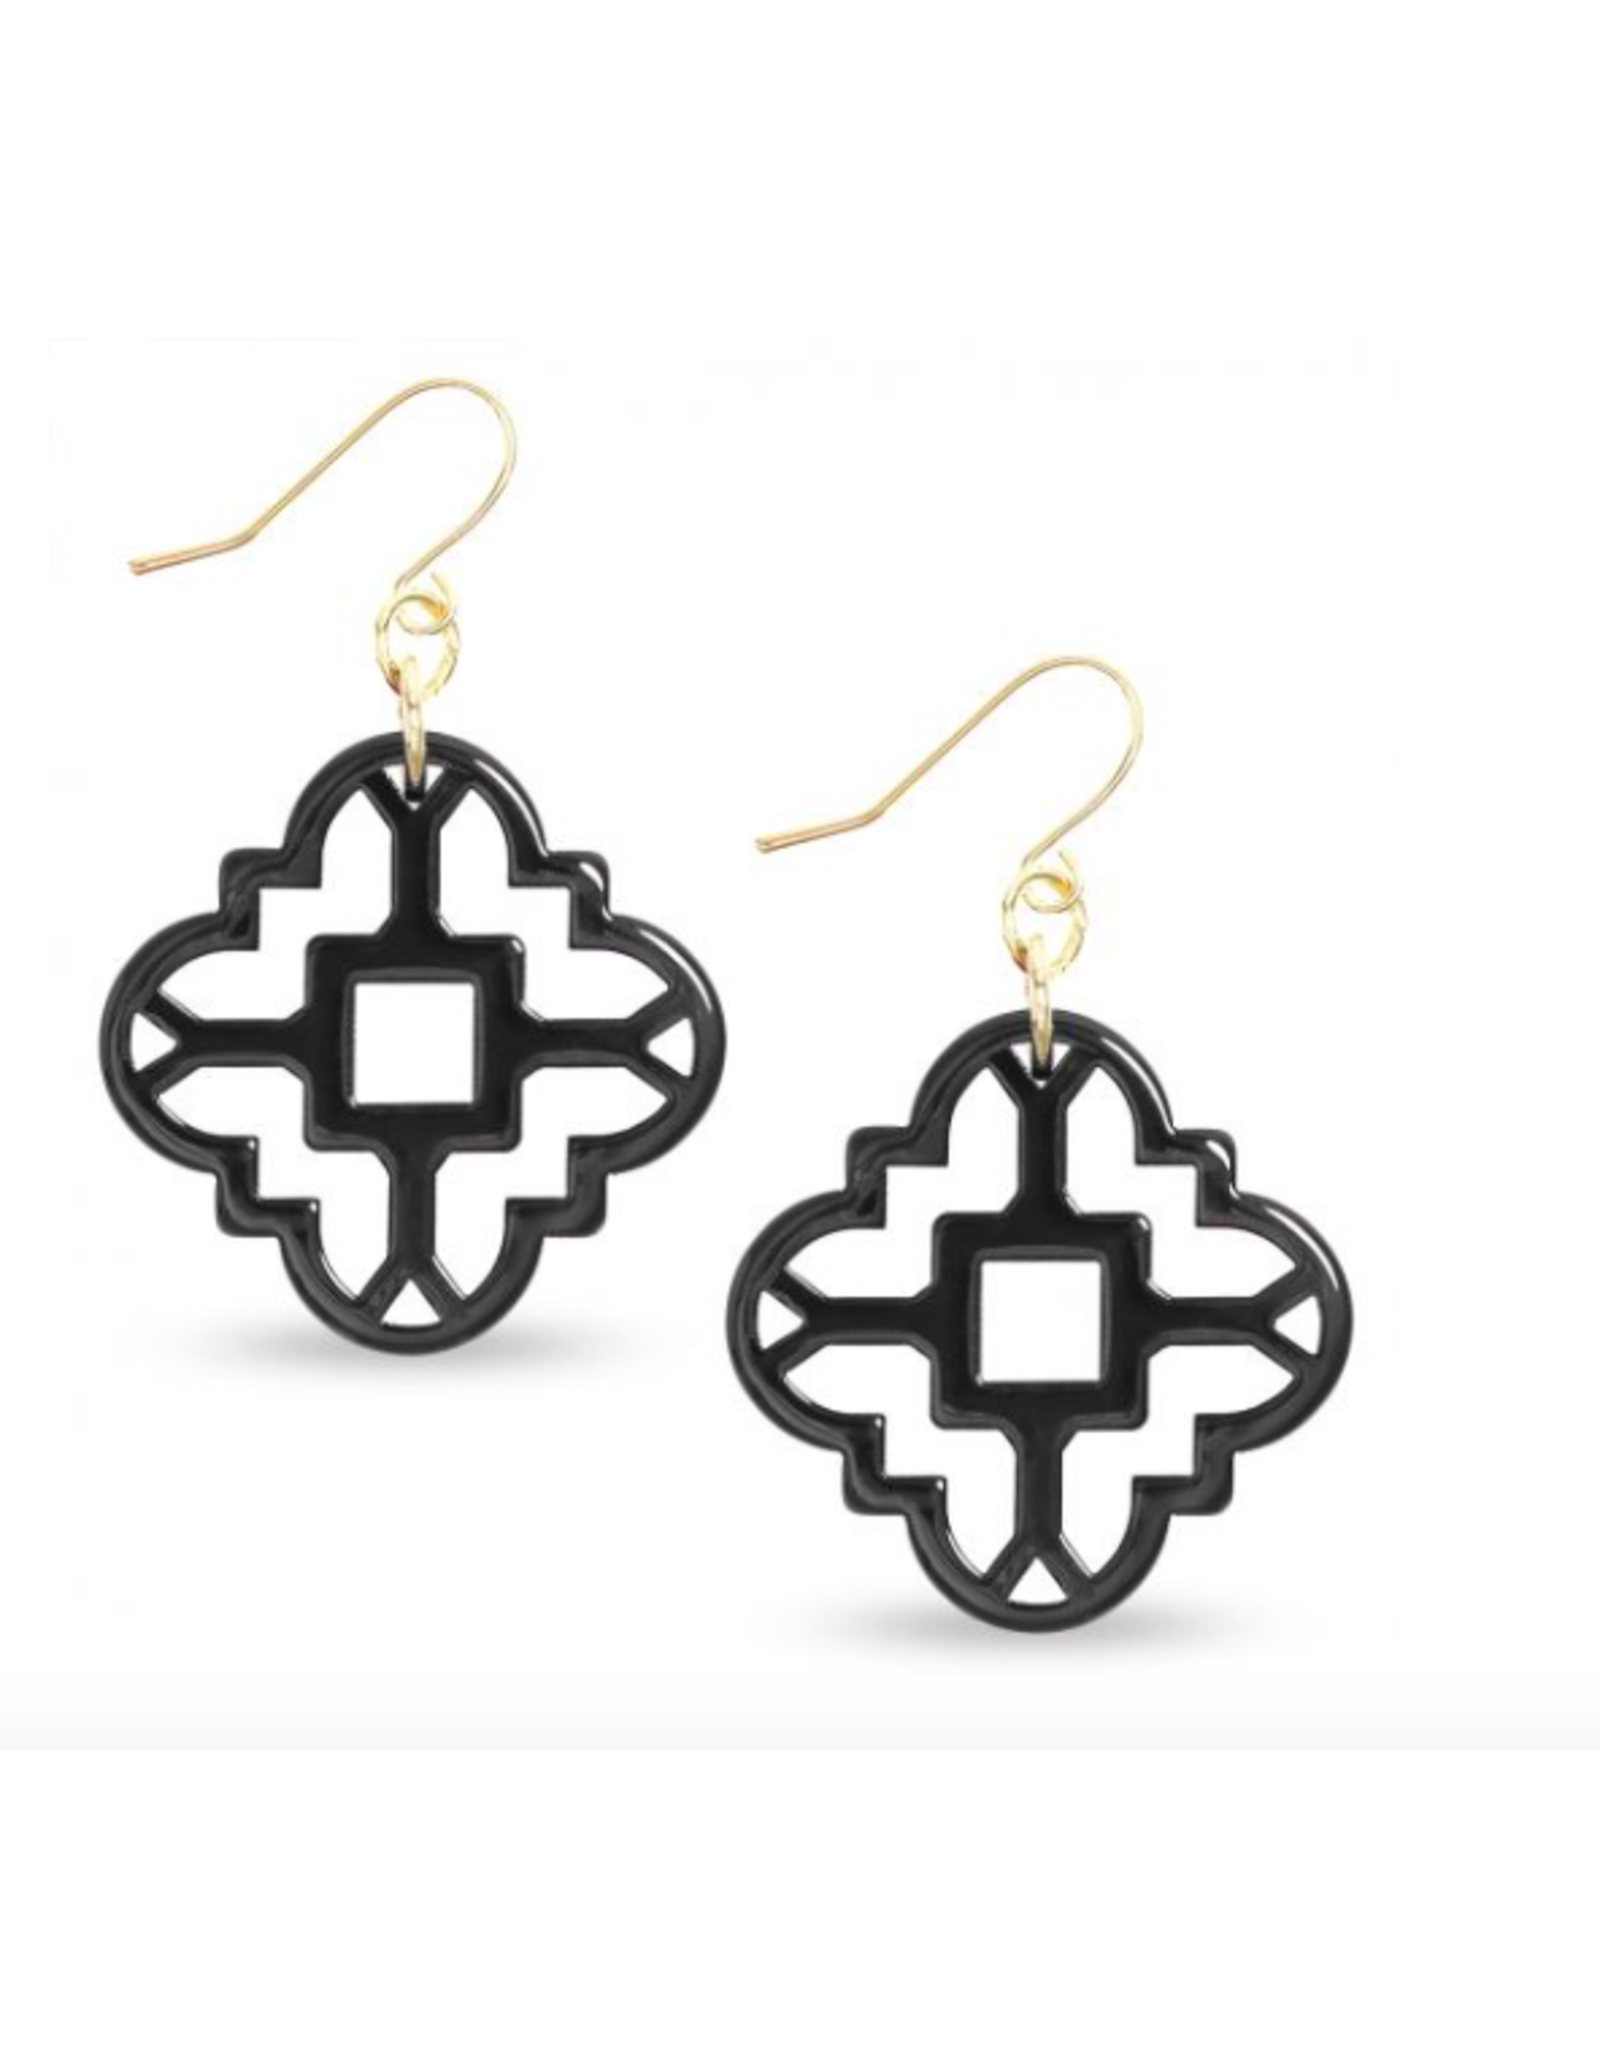 Zenzii Modern Mosaic Earrings in Black